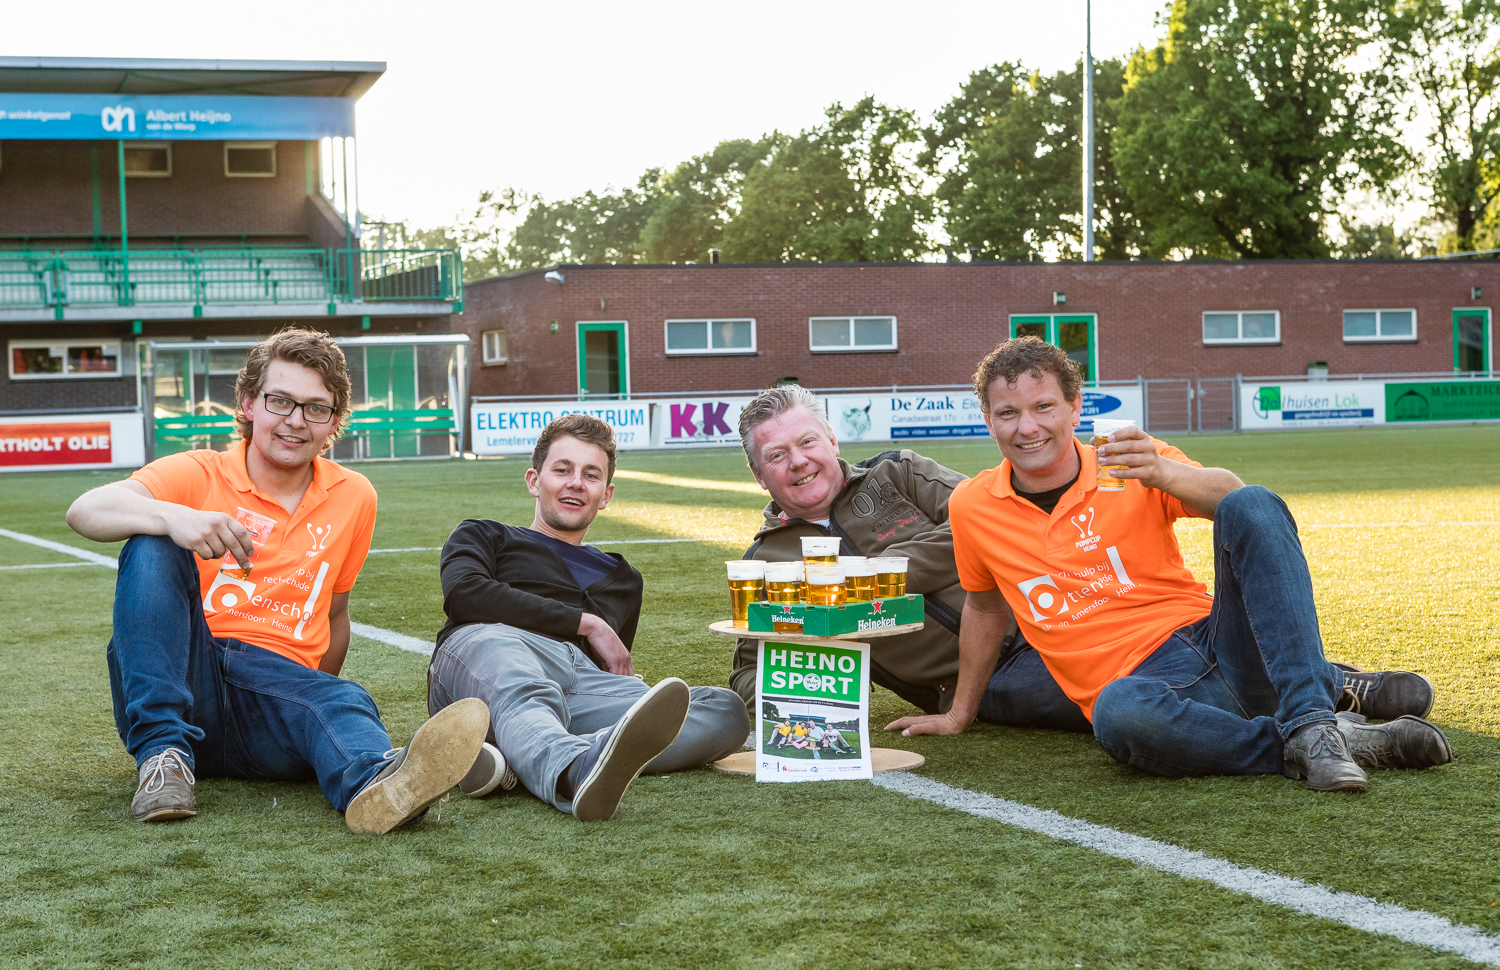 And of course we took this traditional picture on the centre spot of field 1, after which the party really kicked off!